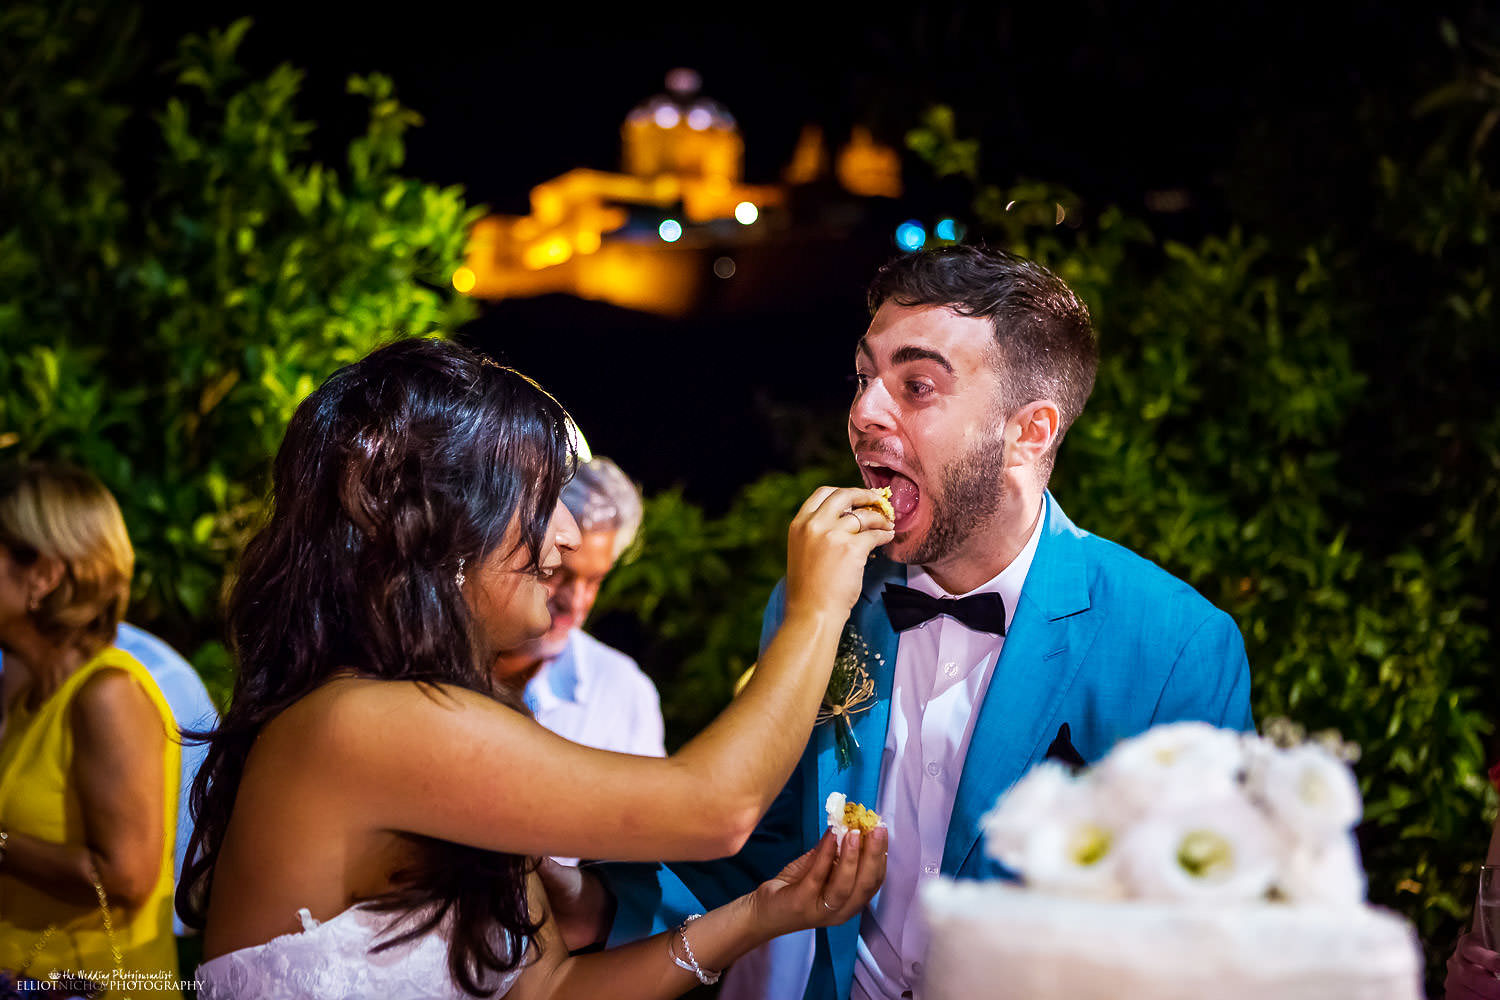 Bride feeding wedding cake with her groom with Mdina in the background, Malta